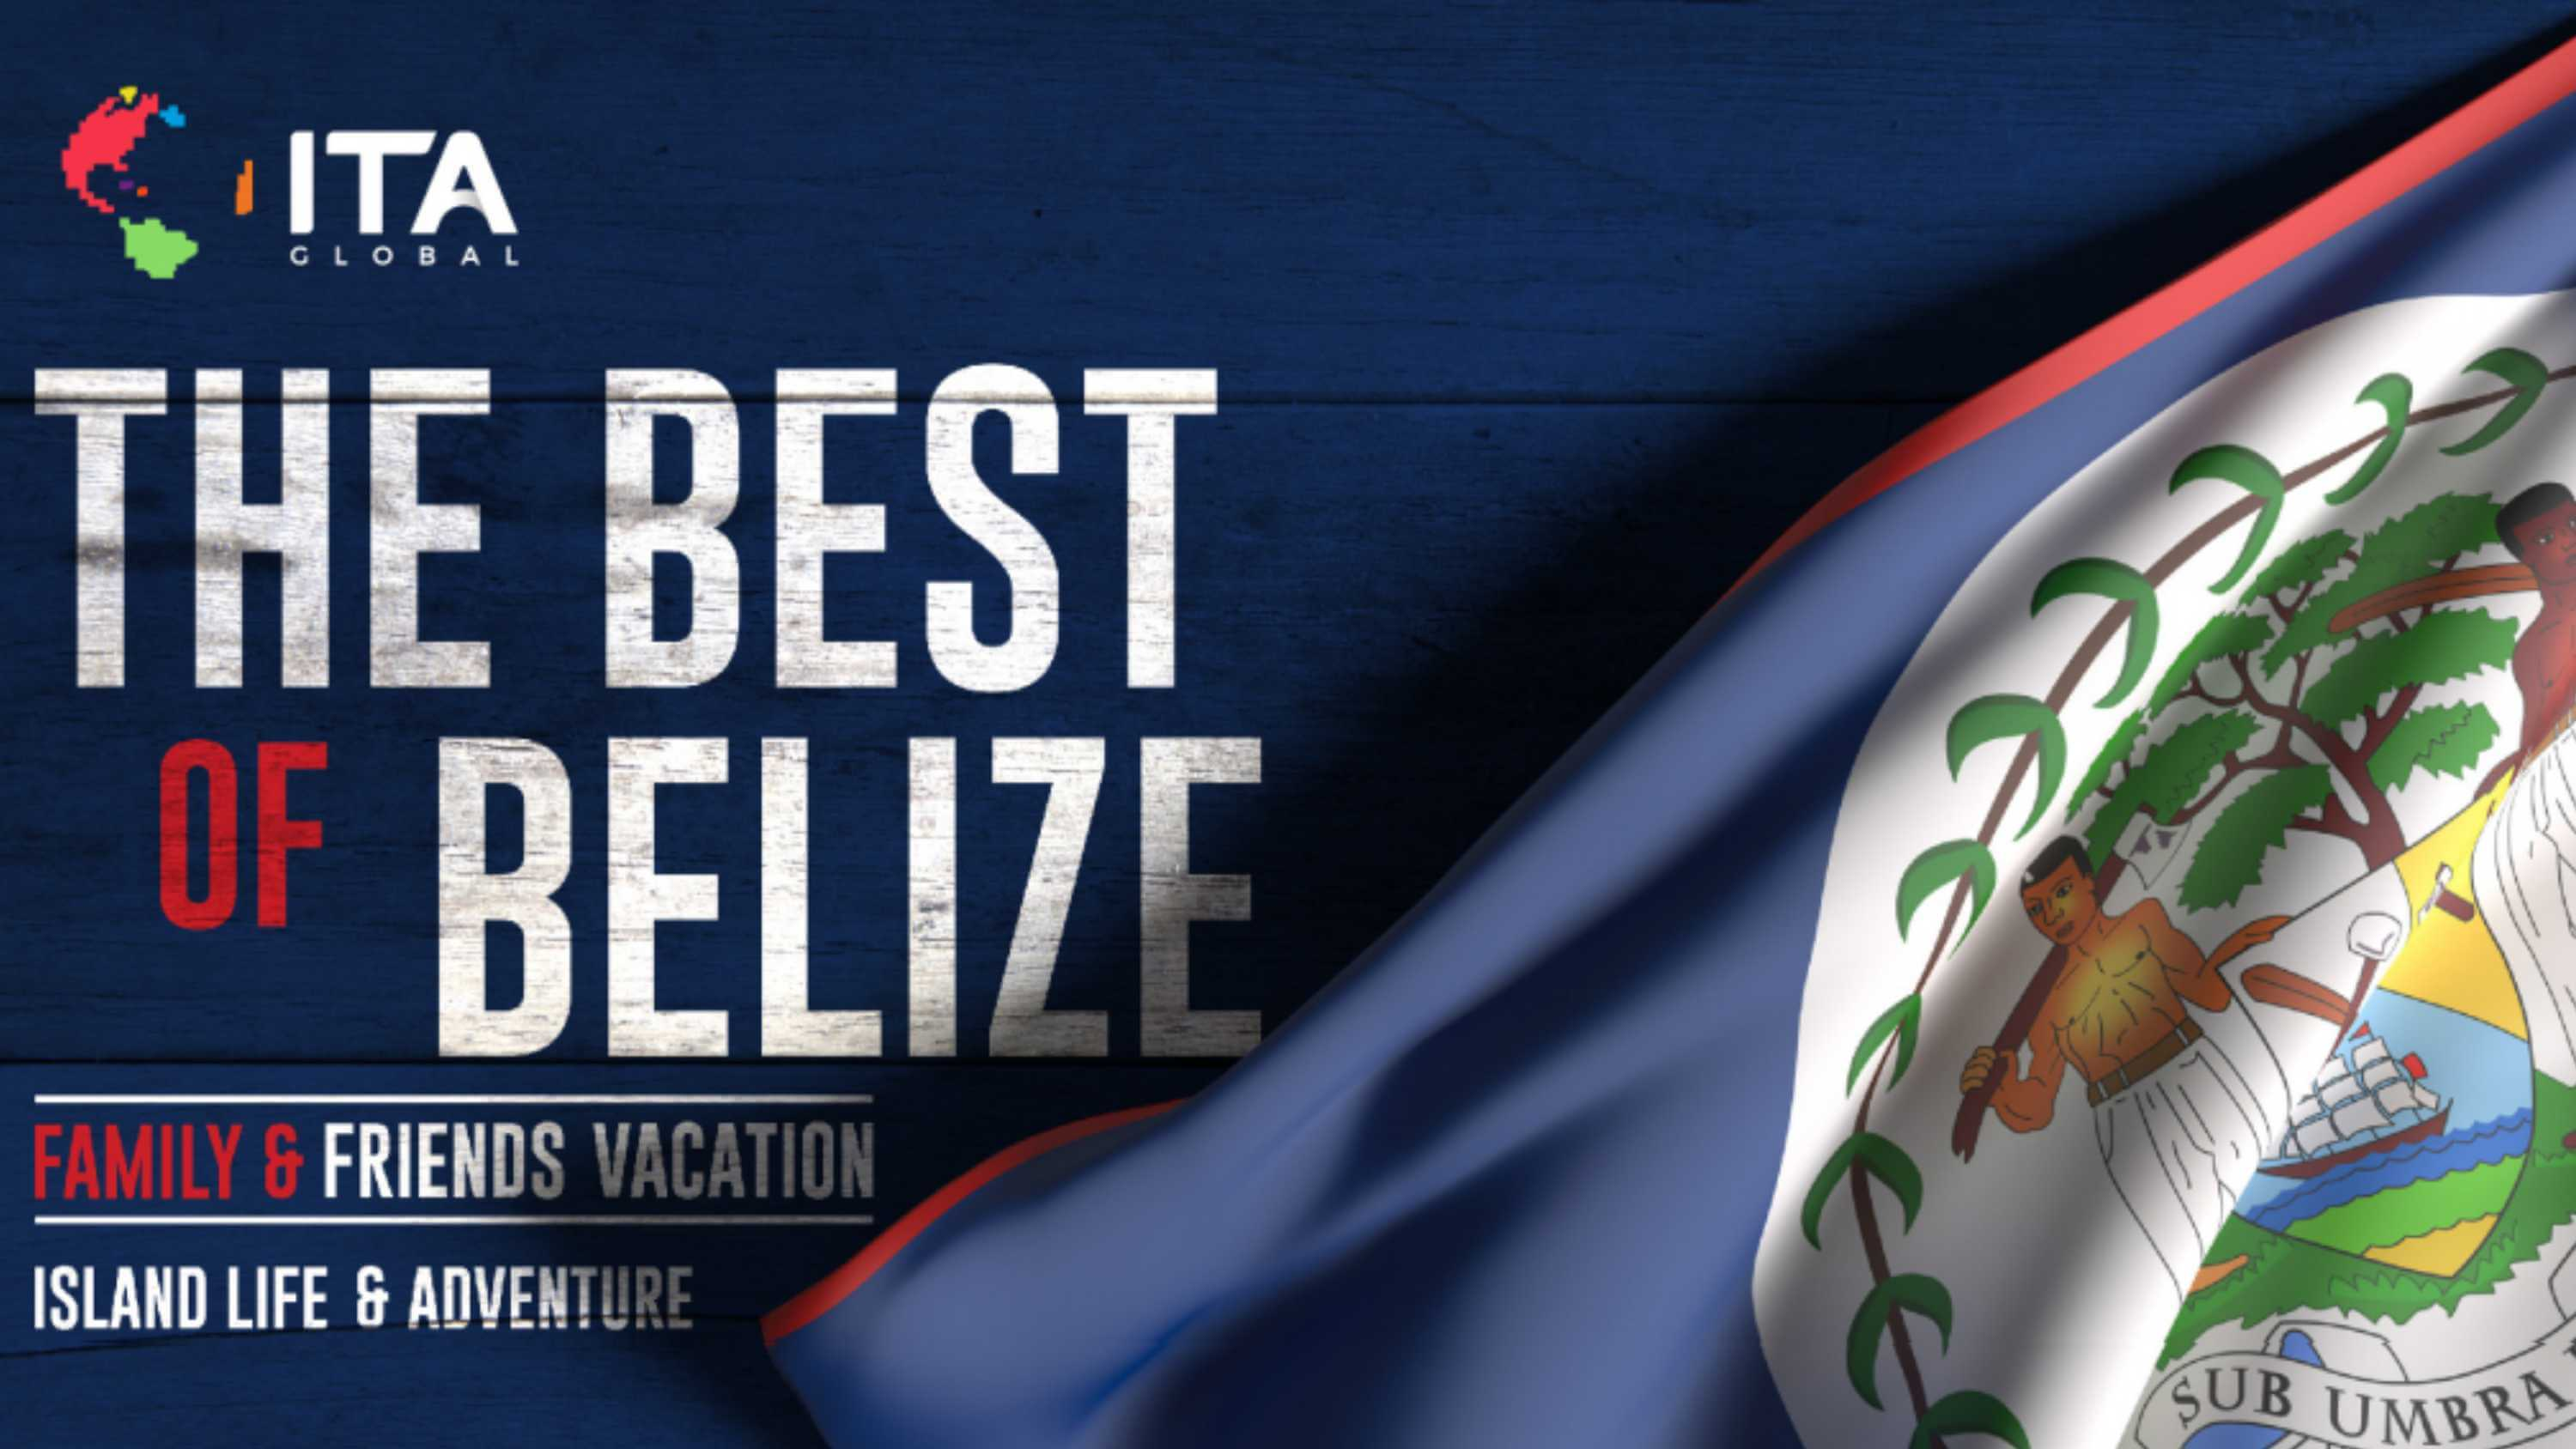 Belize Family & Friends Vacation